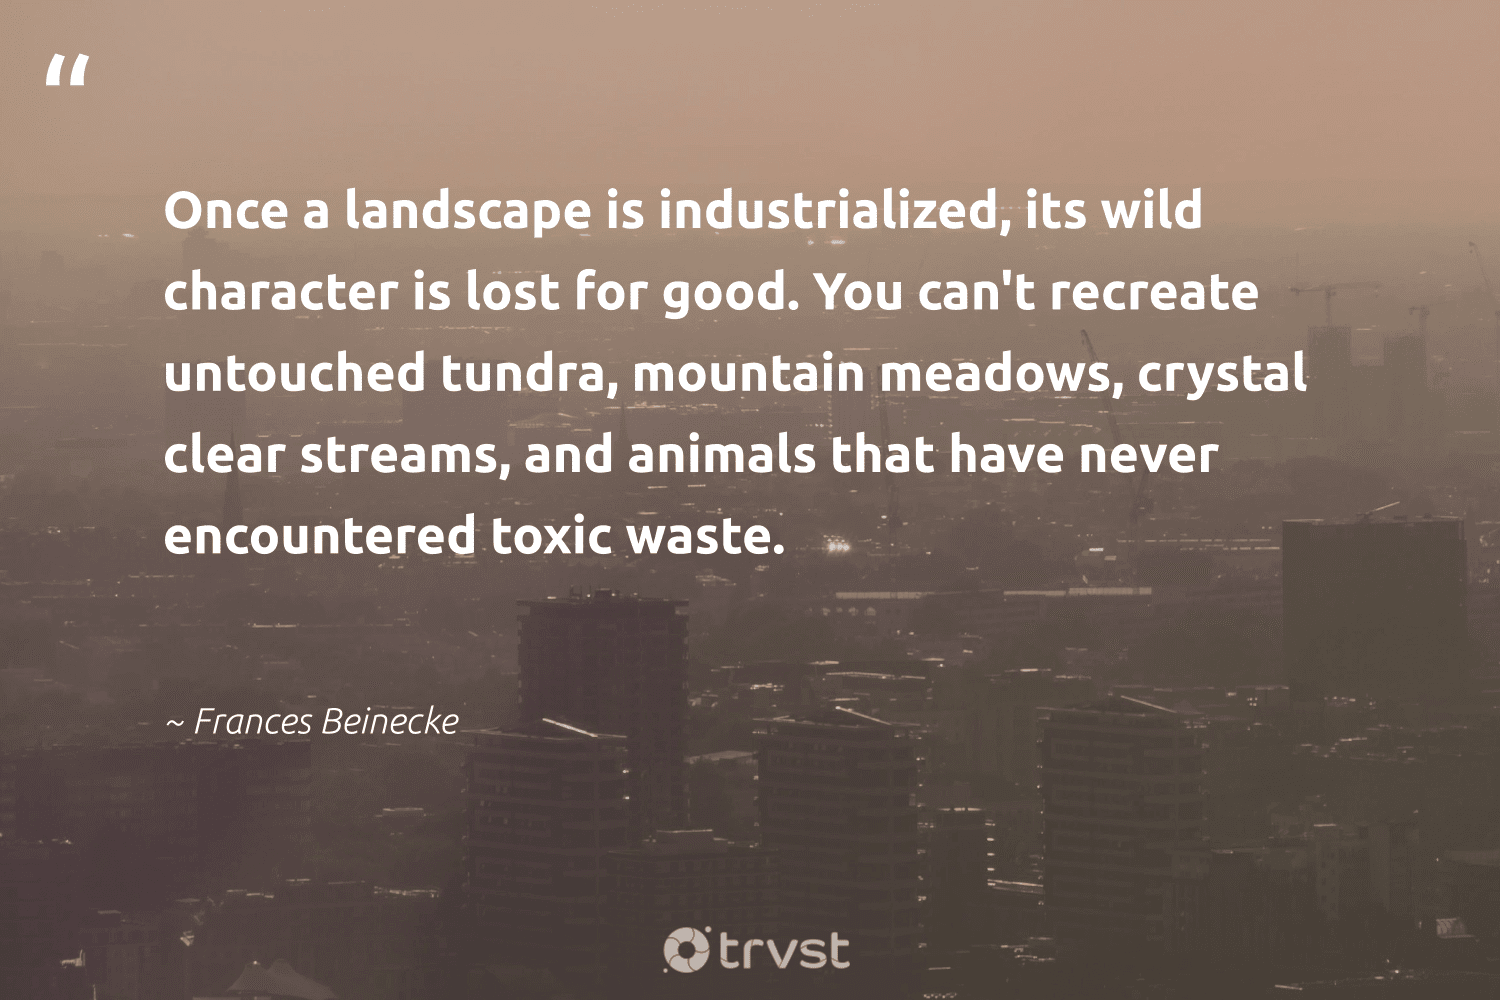 """""""Once a landscape is industrialized, its wild character is lost for good. You can't recreate untouched tundra, mountain meadows, crystal clear streams, and animals that have never encountered toxic waste.""""  - Frances Beinecke #trvst #quotes #pollute #waste #mountain #toxic #animals #spill #gogreen #climatechange #thinkgreen #pollution"""